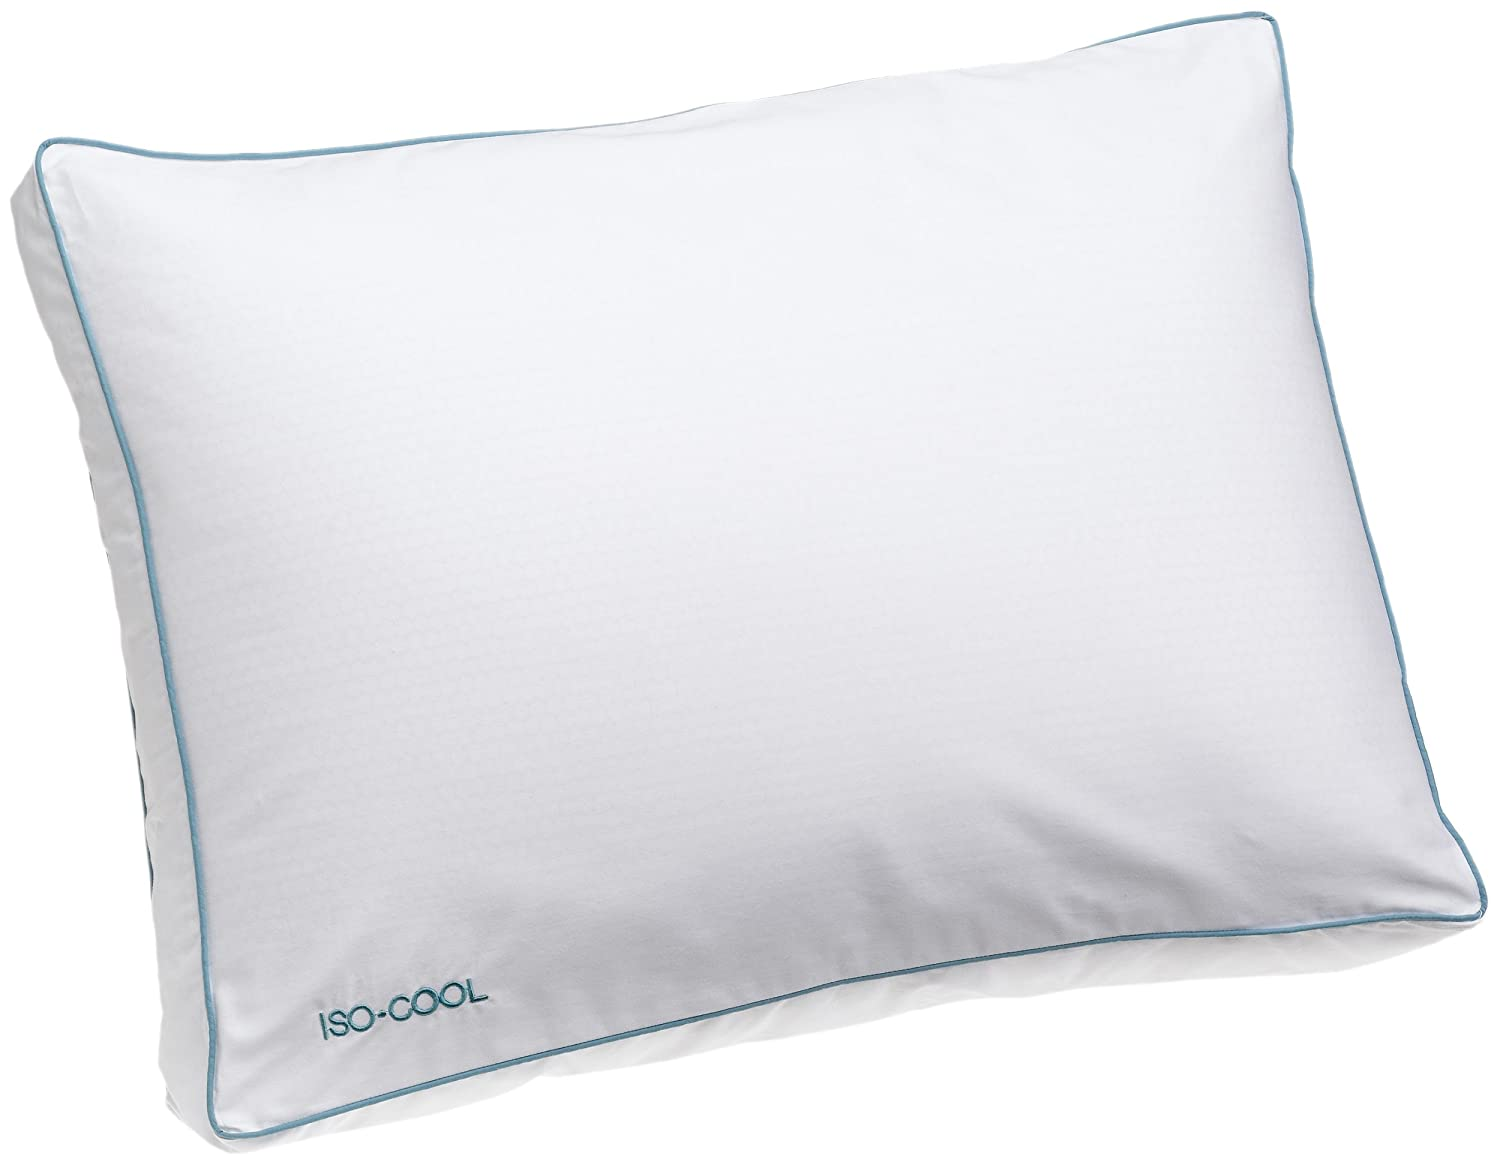 Iso Cool Side Sleeper Polyester Sleeping Pillow with